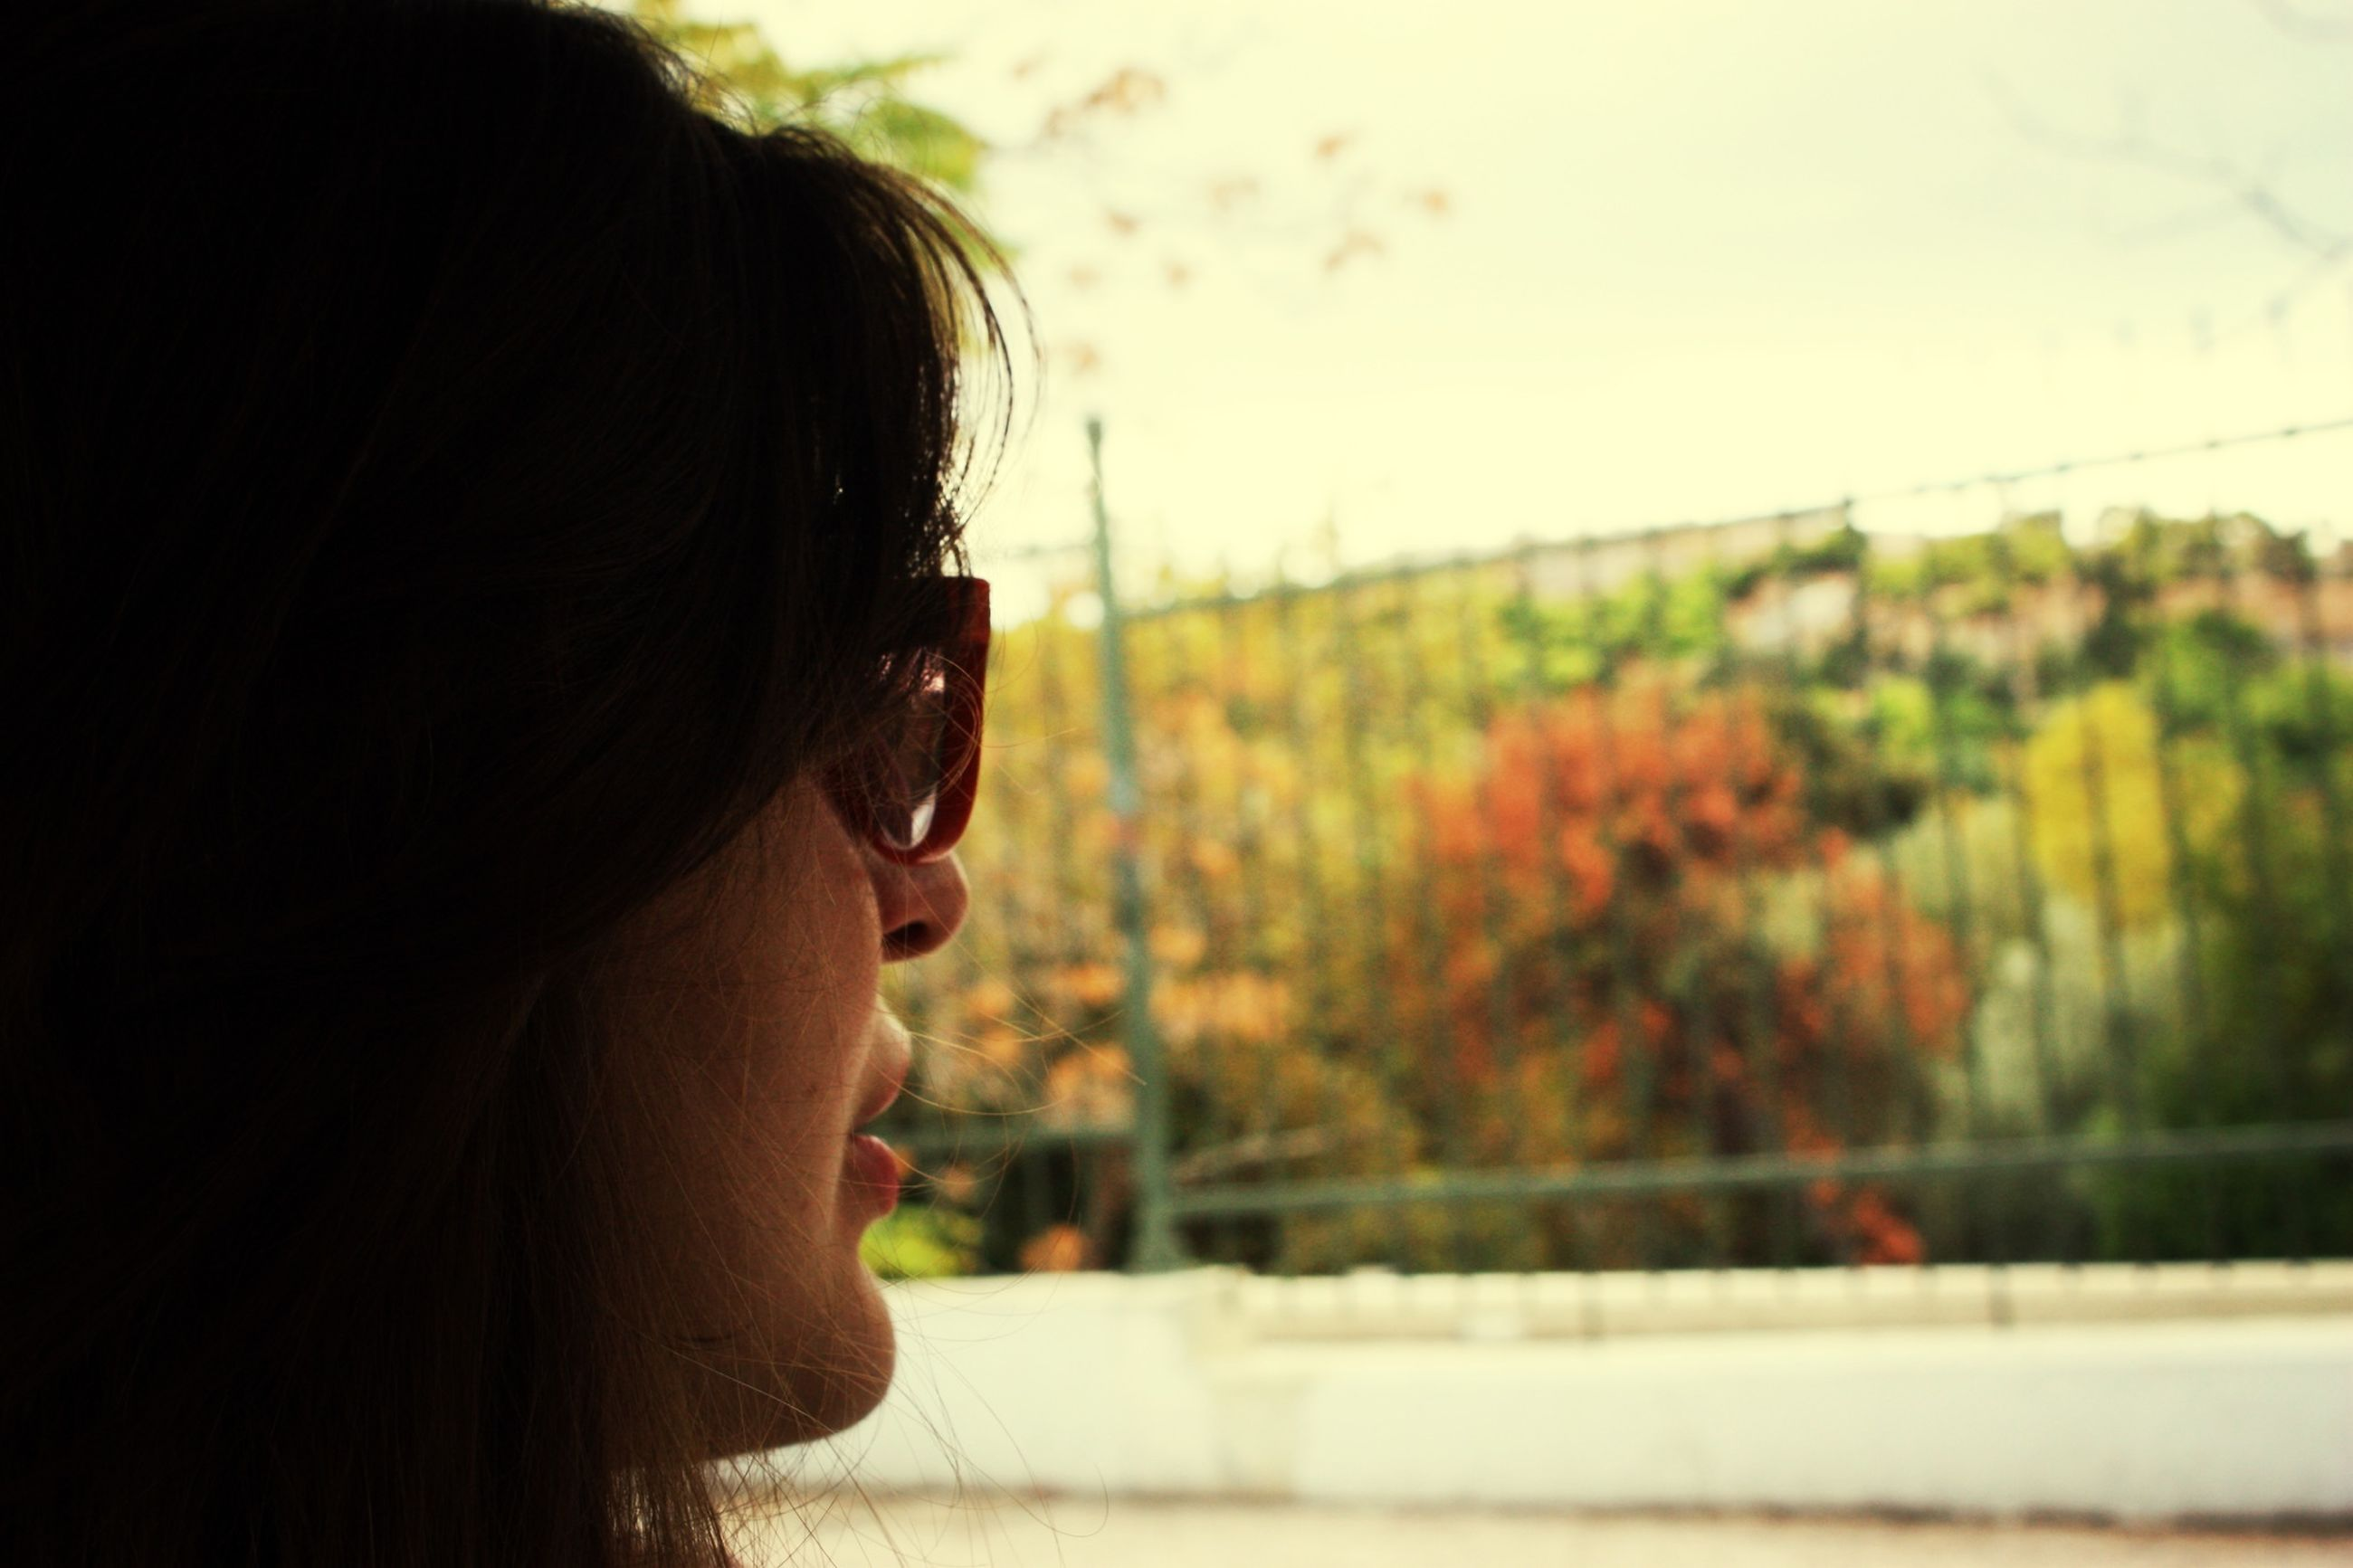 headshot, focus on foreground, lifestyles, leisure activity, person, close-up, young women, young adult, long hair, contemplation, looking away, side view, head and shoulders, brown hair, human face, sky, tree